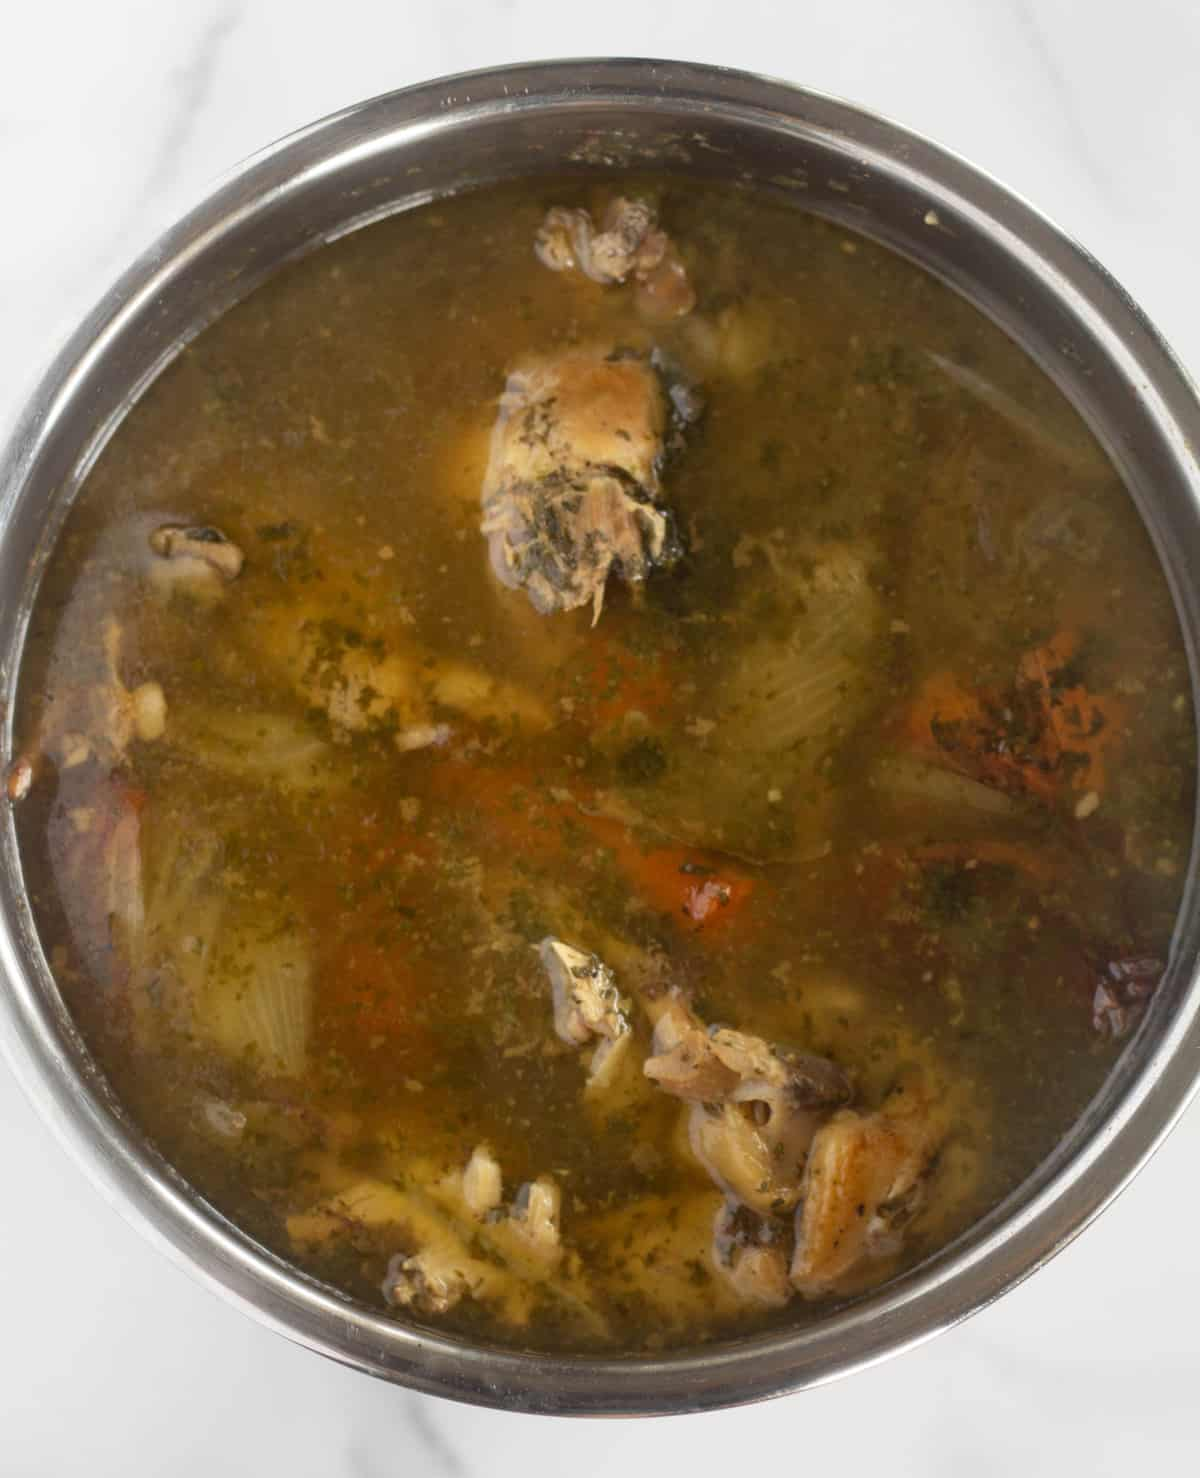 Cooked bone broth in instant pot before straining